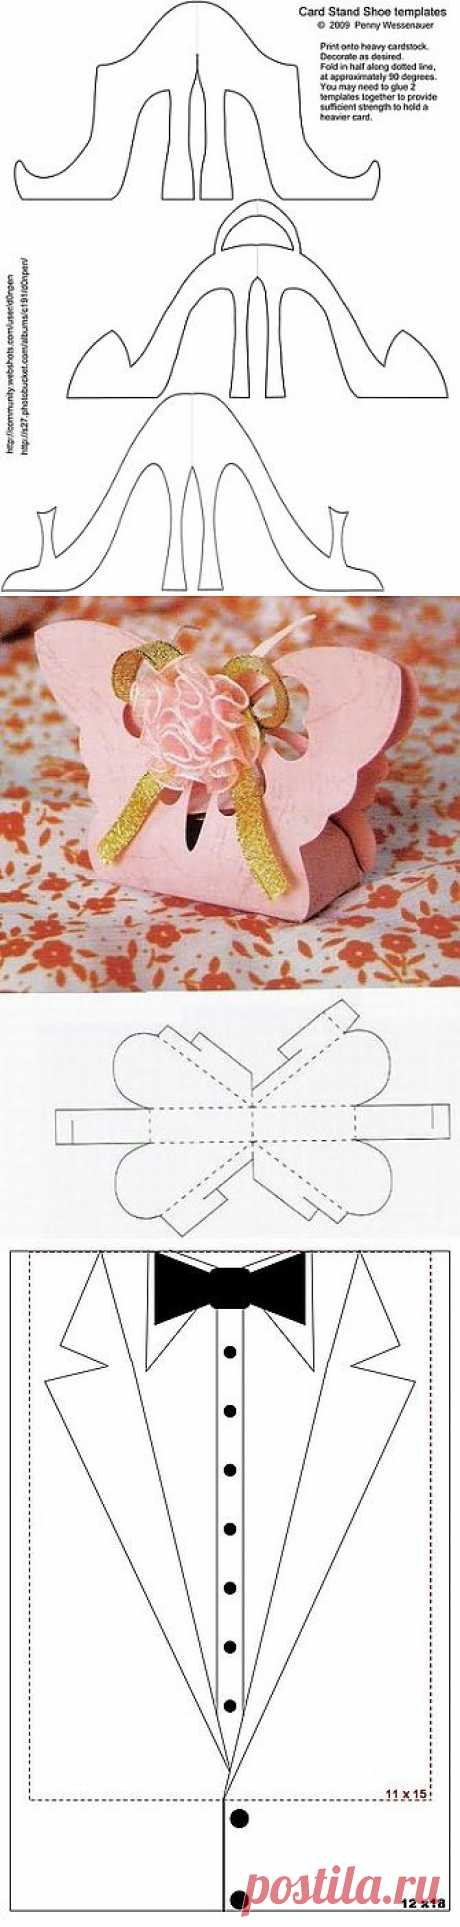 Templates for scrapbooking.